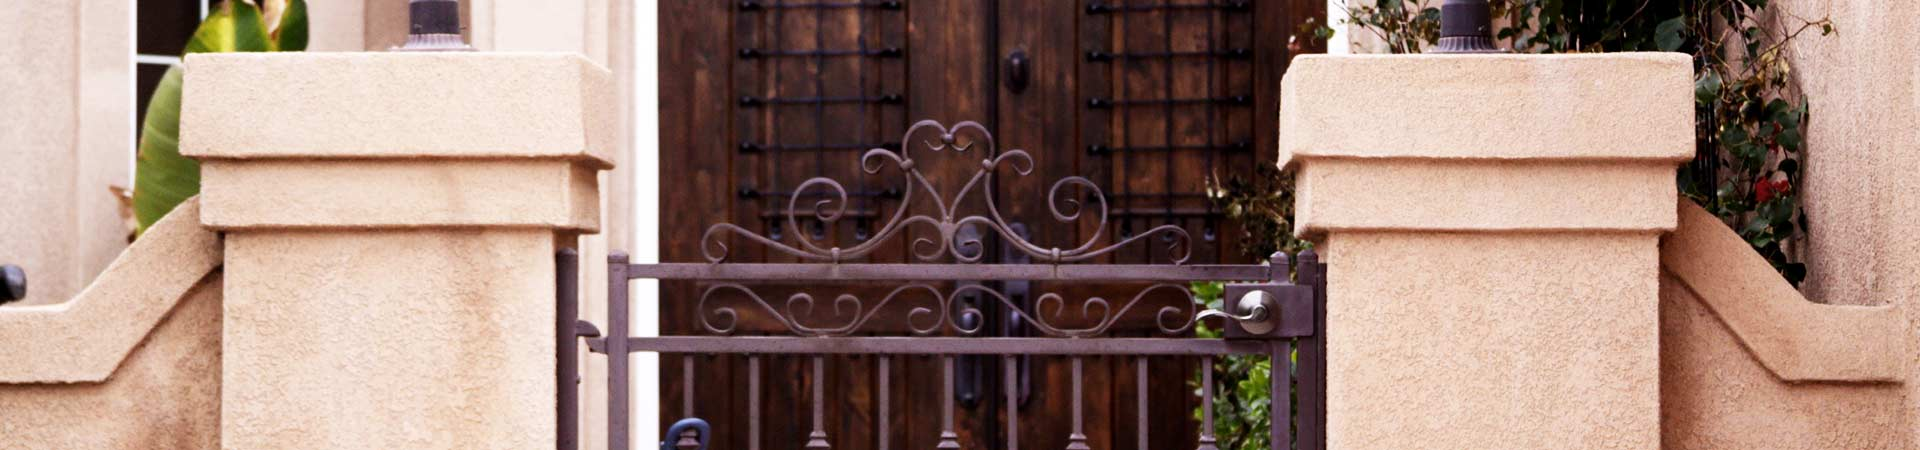 Wrought Iron Security Installations